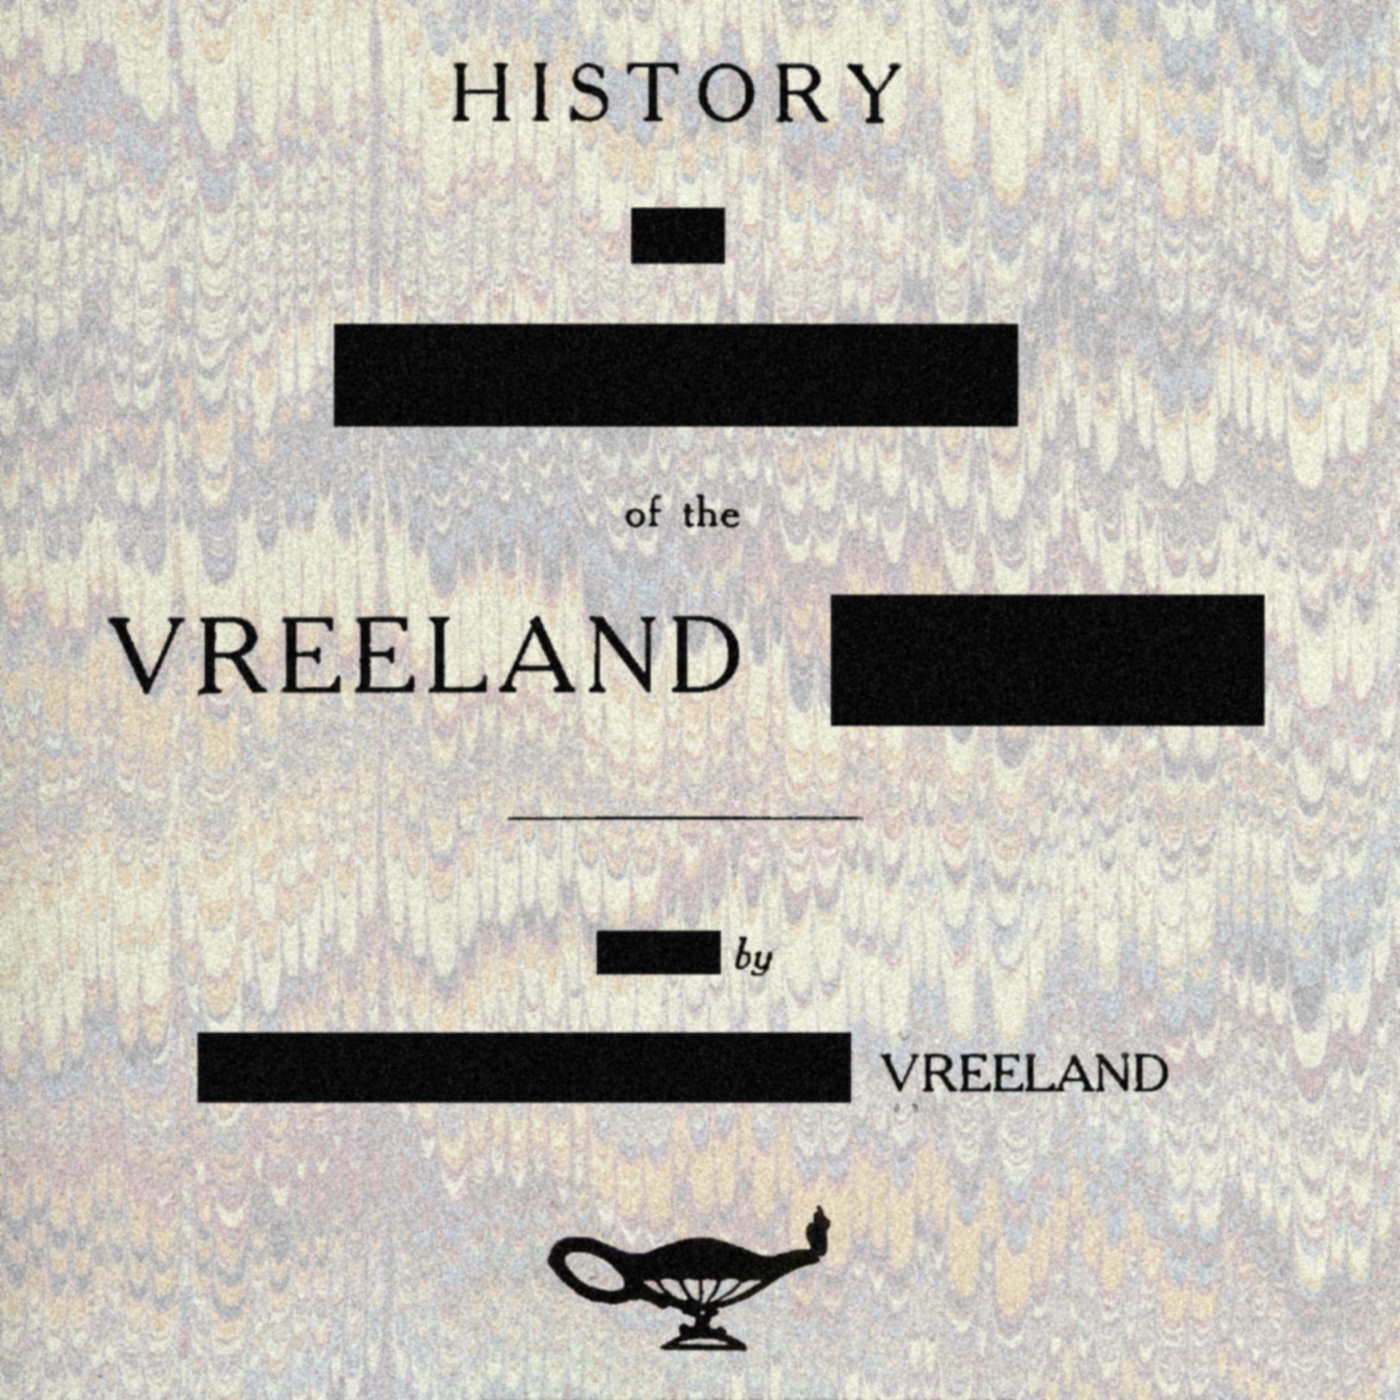 History of the Vreeland